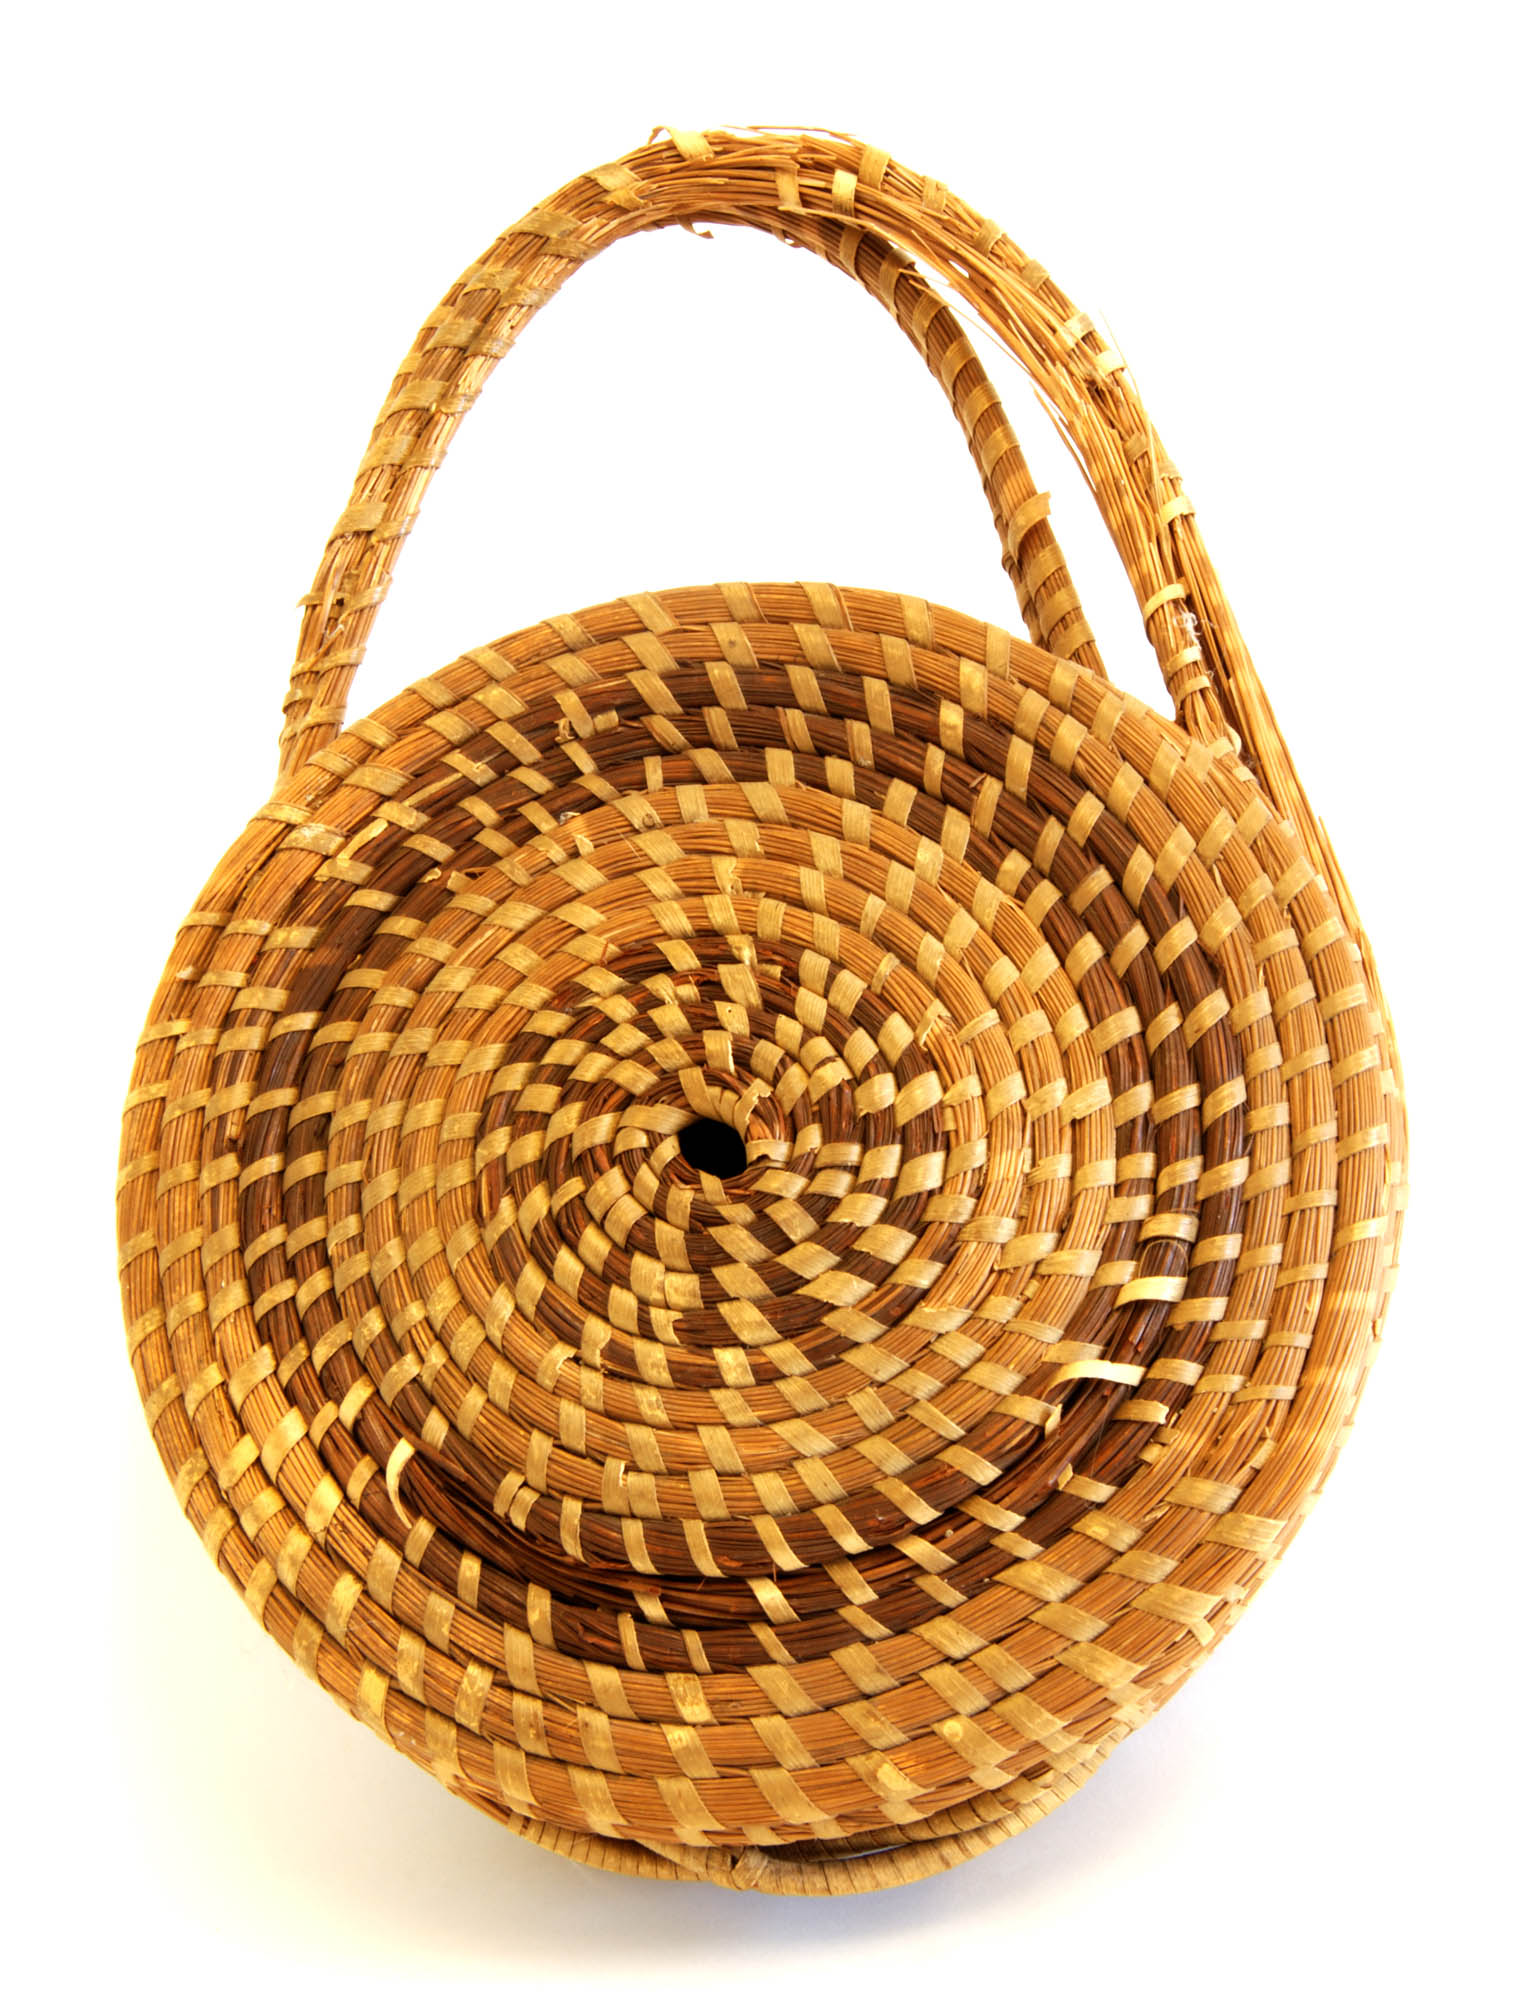 Sweetgrass sewing basket